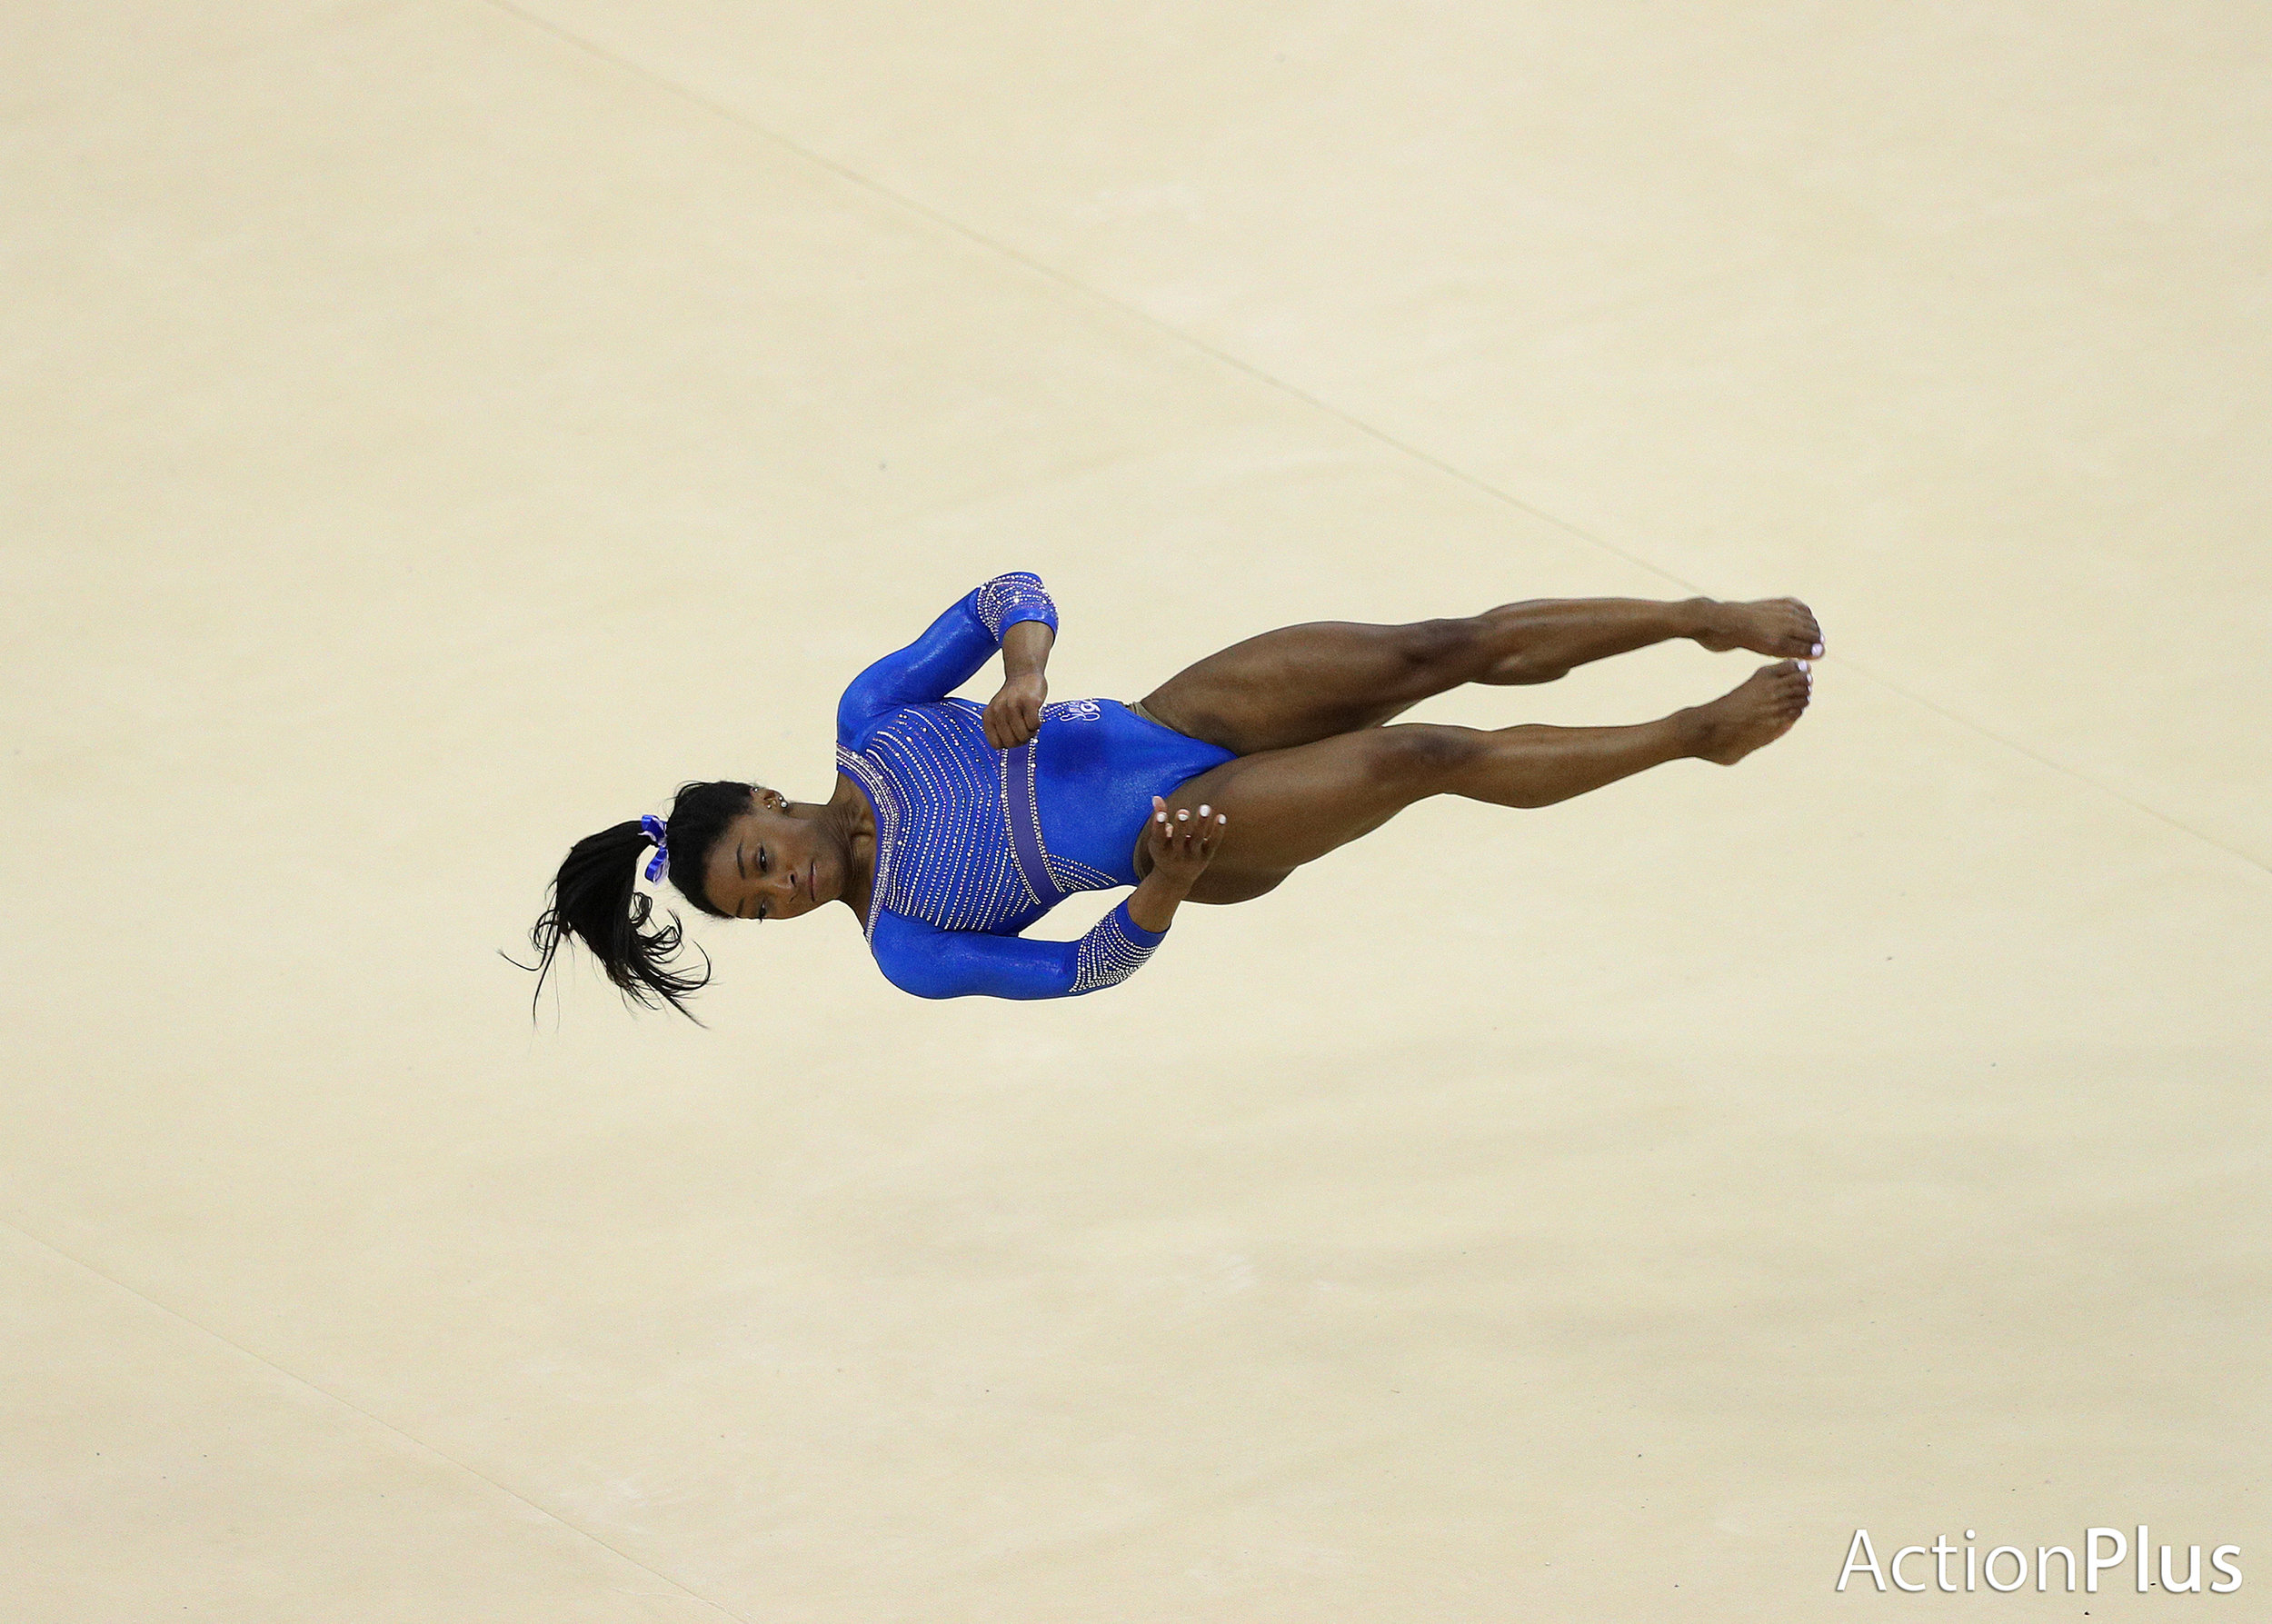 Simone Biles of USA performing on the floor.